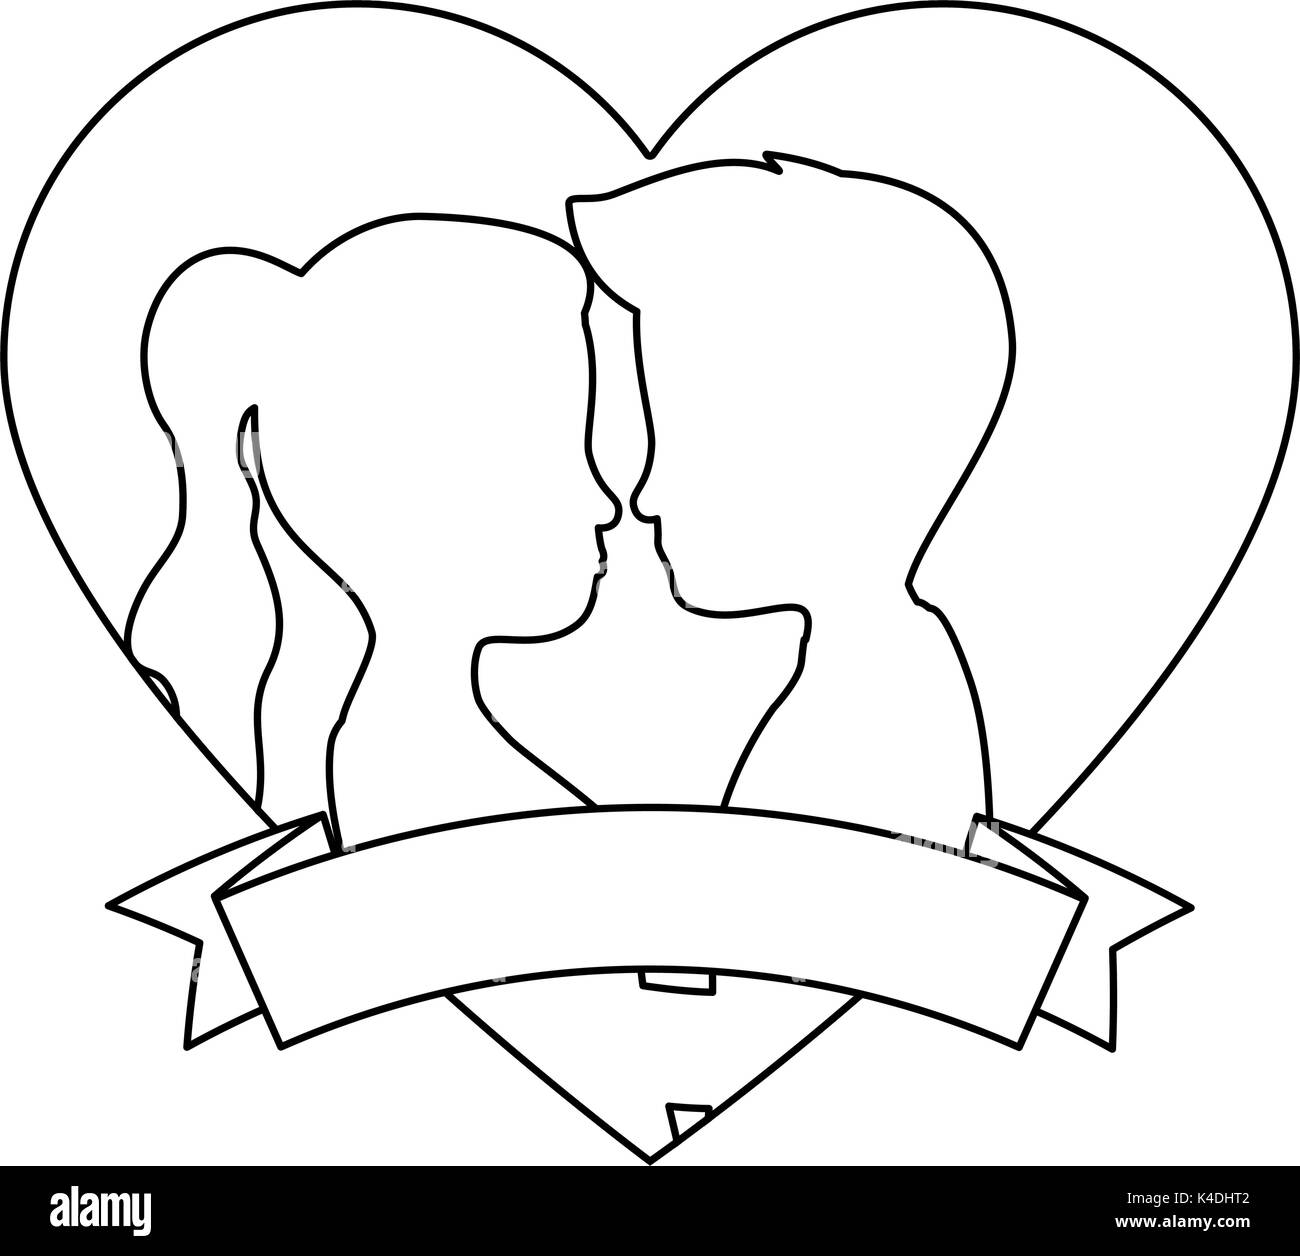 hight resolution of cute couple in love silhouette kissing vector illustration design